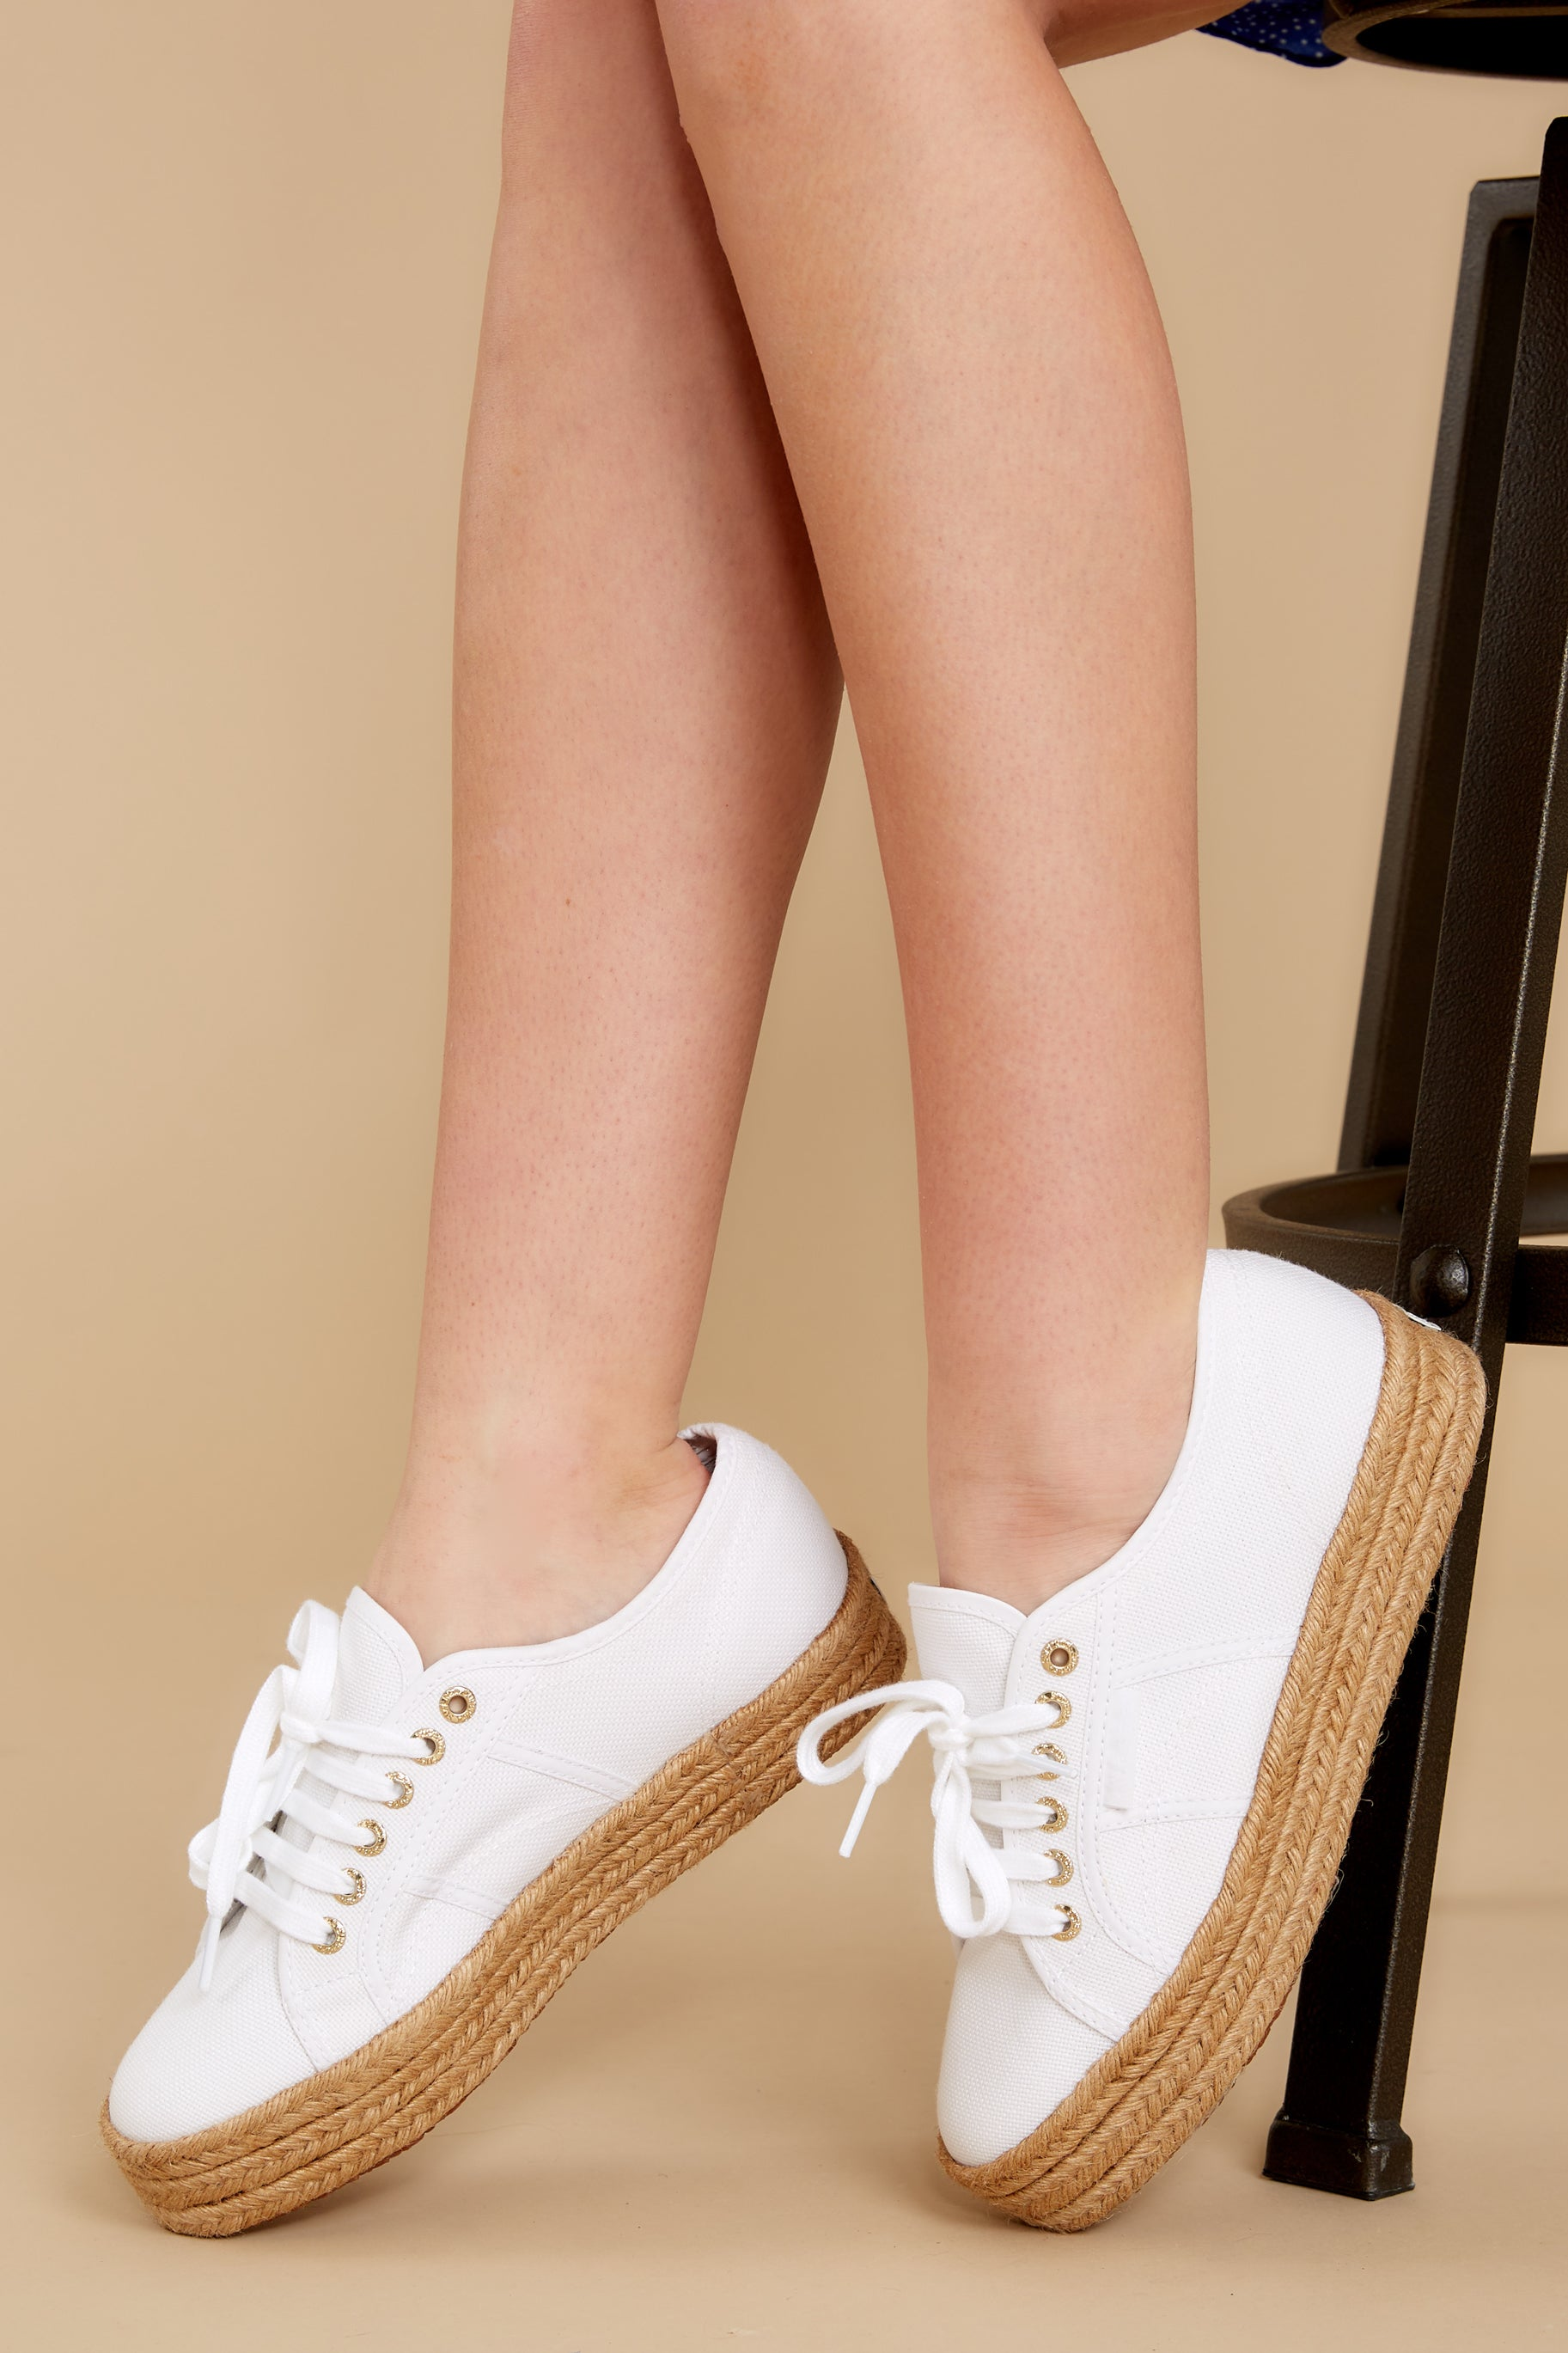 5 2730 Cotropew White Platform Sneakers at reddress.com